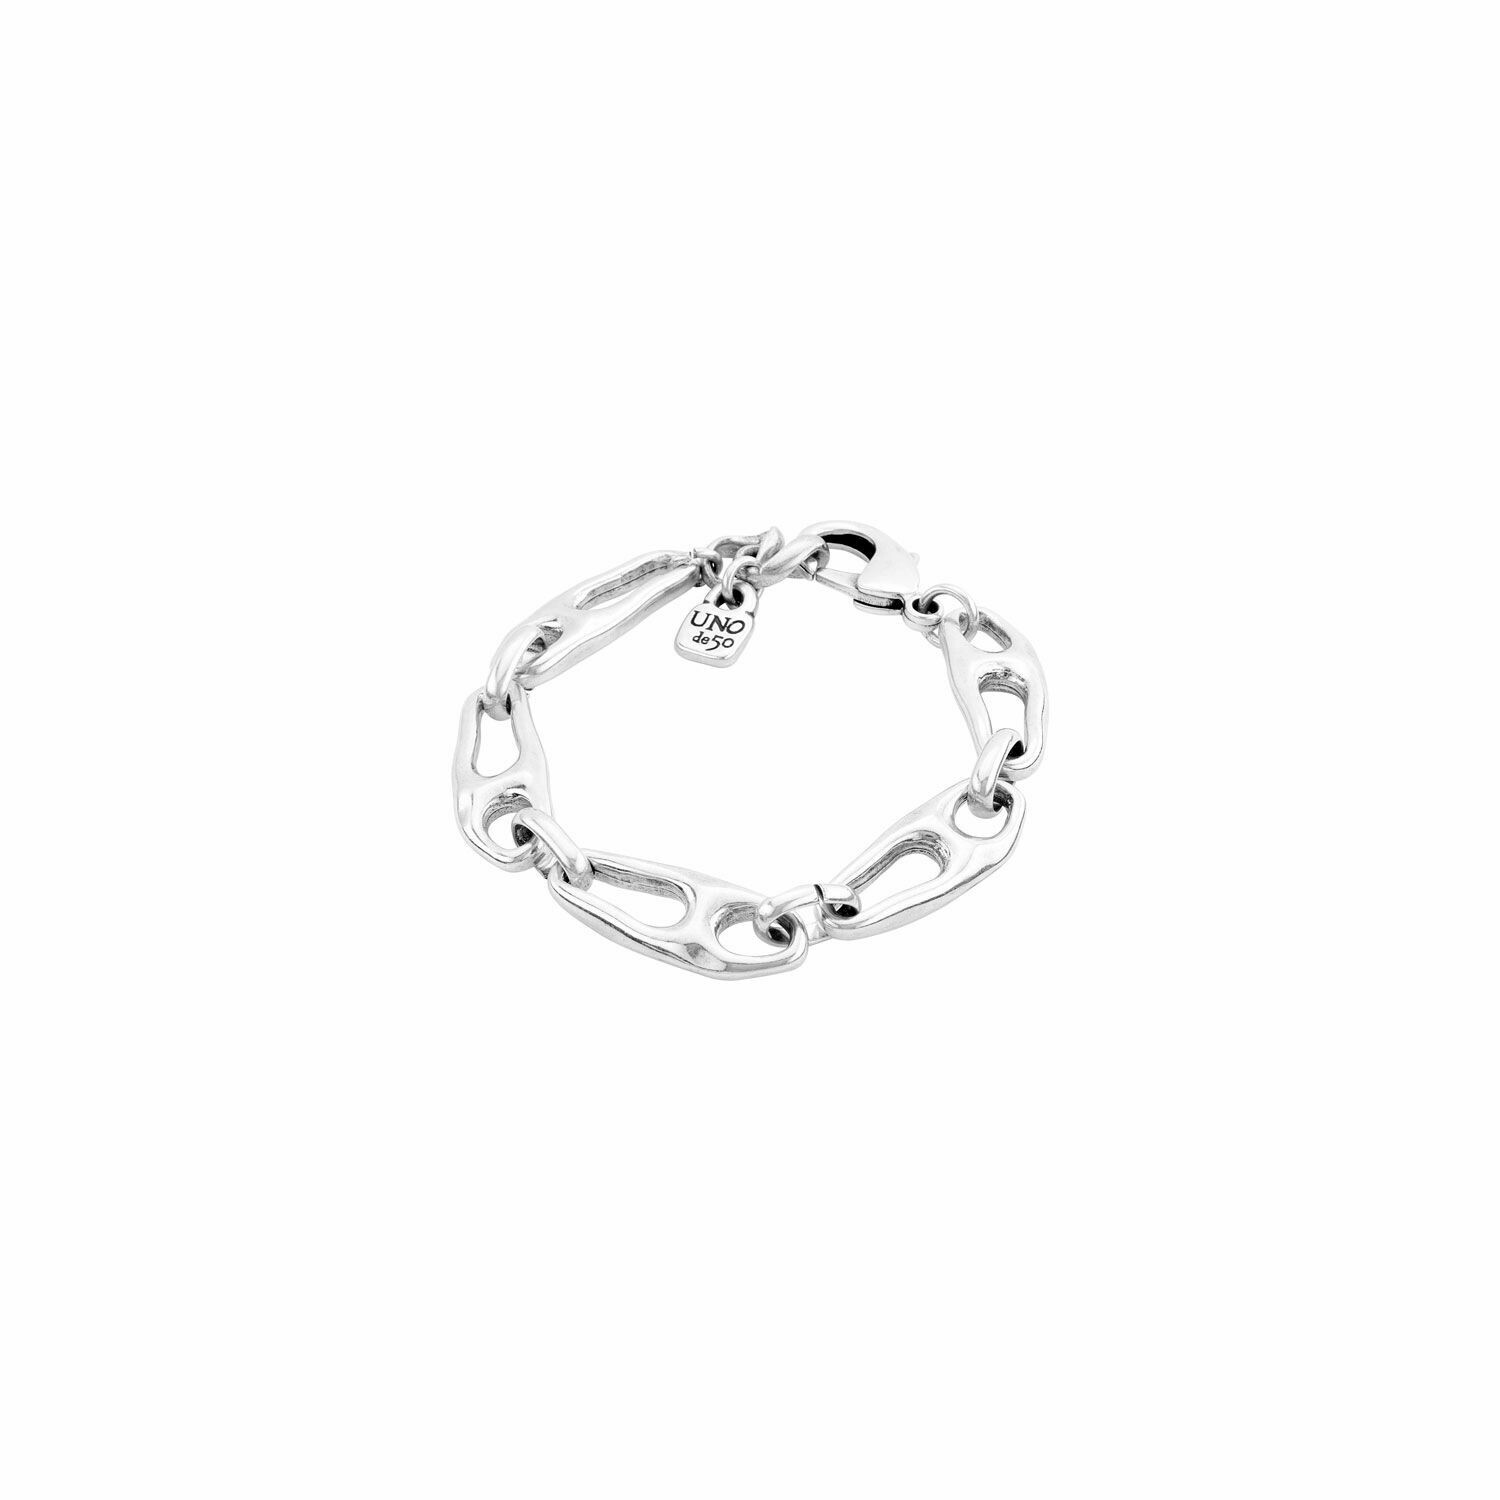 Connected Silver Bracelet